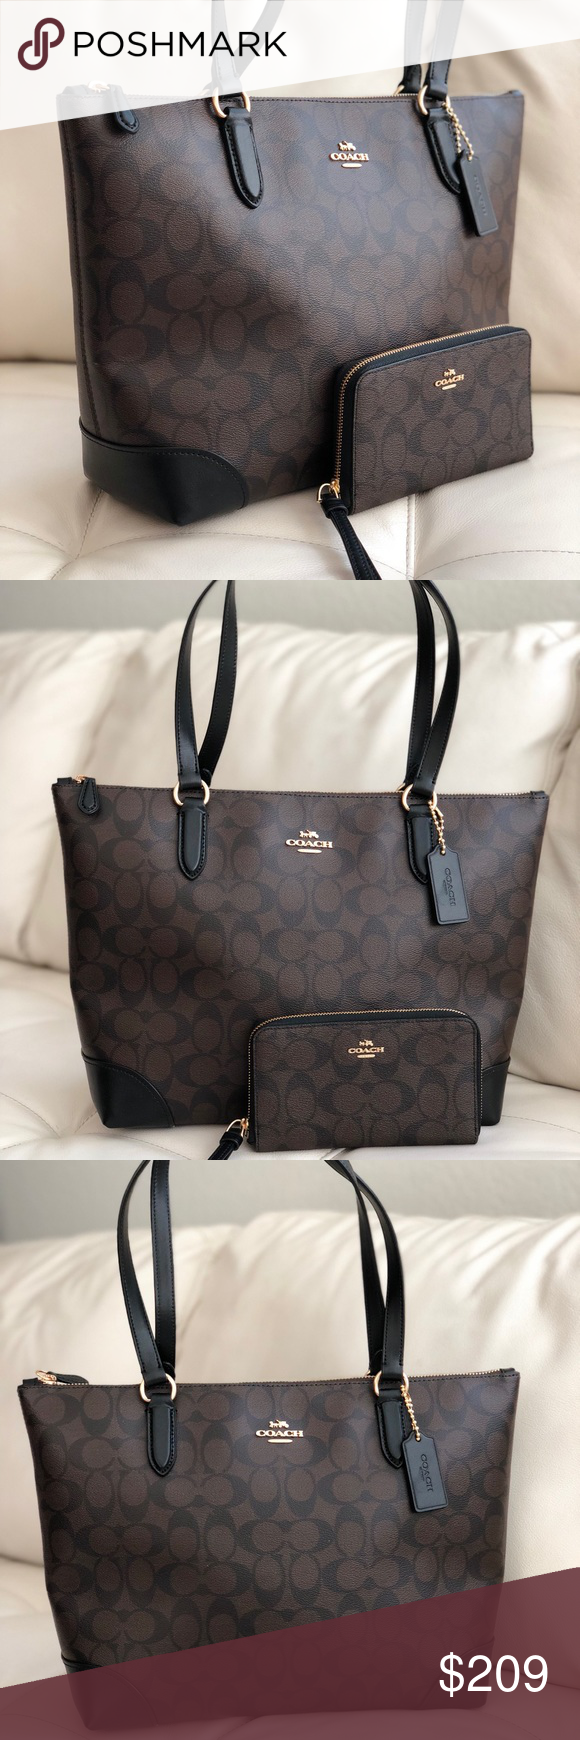 Coach Zip Tote In Signature F58292 Brown Wallet Boutique My Posh Gold